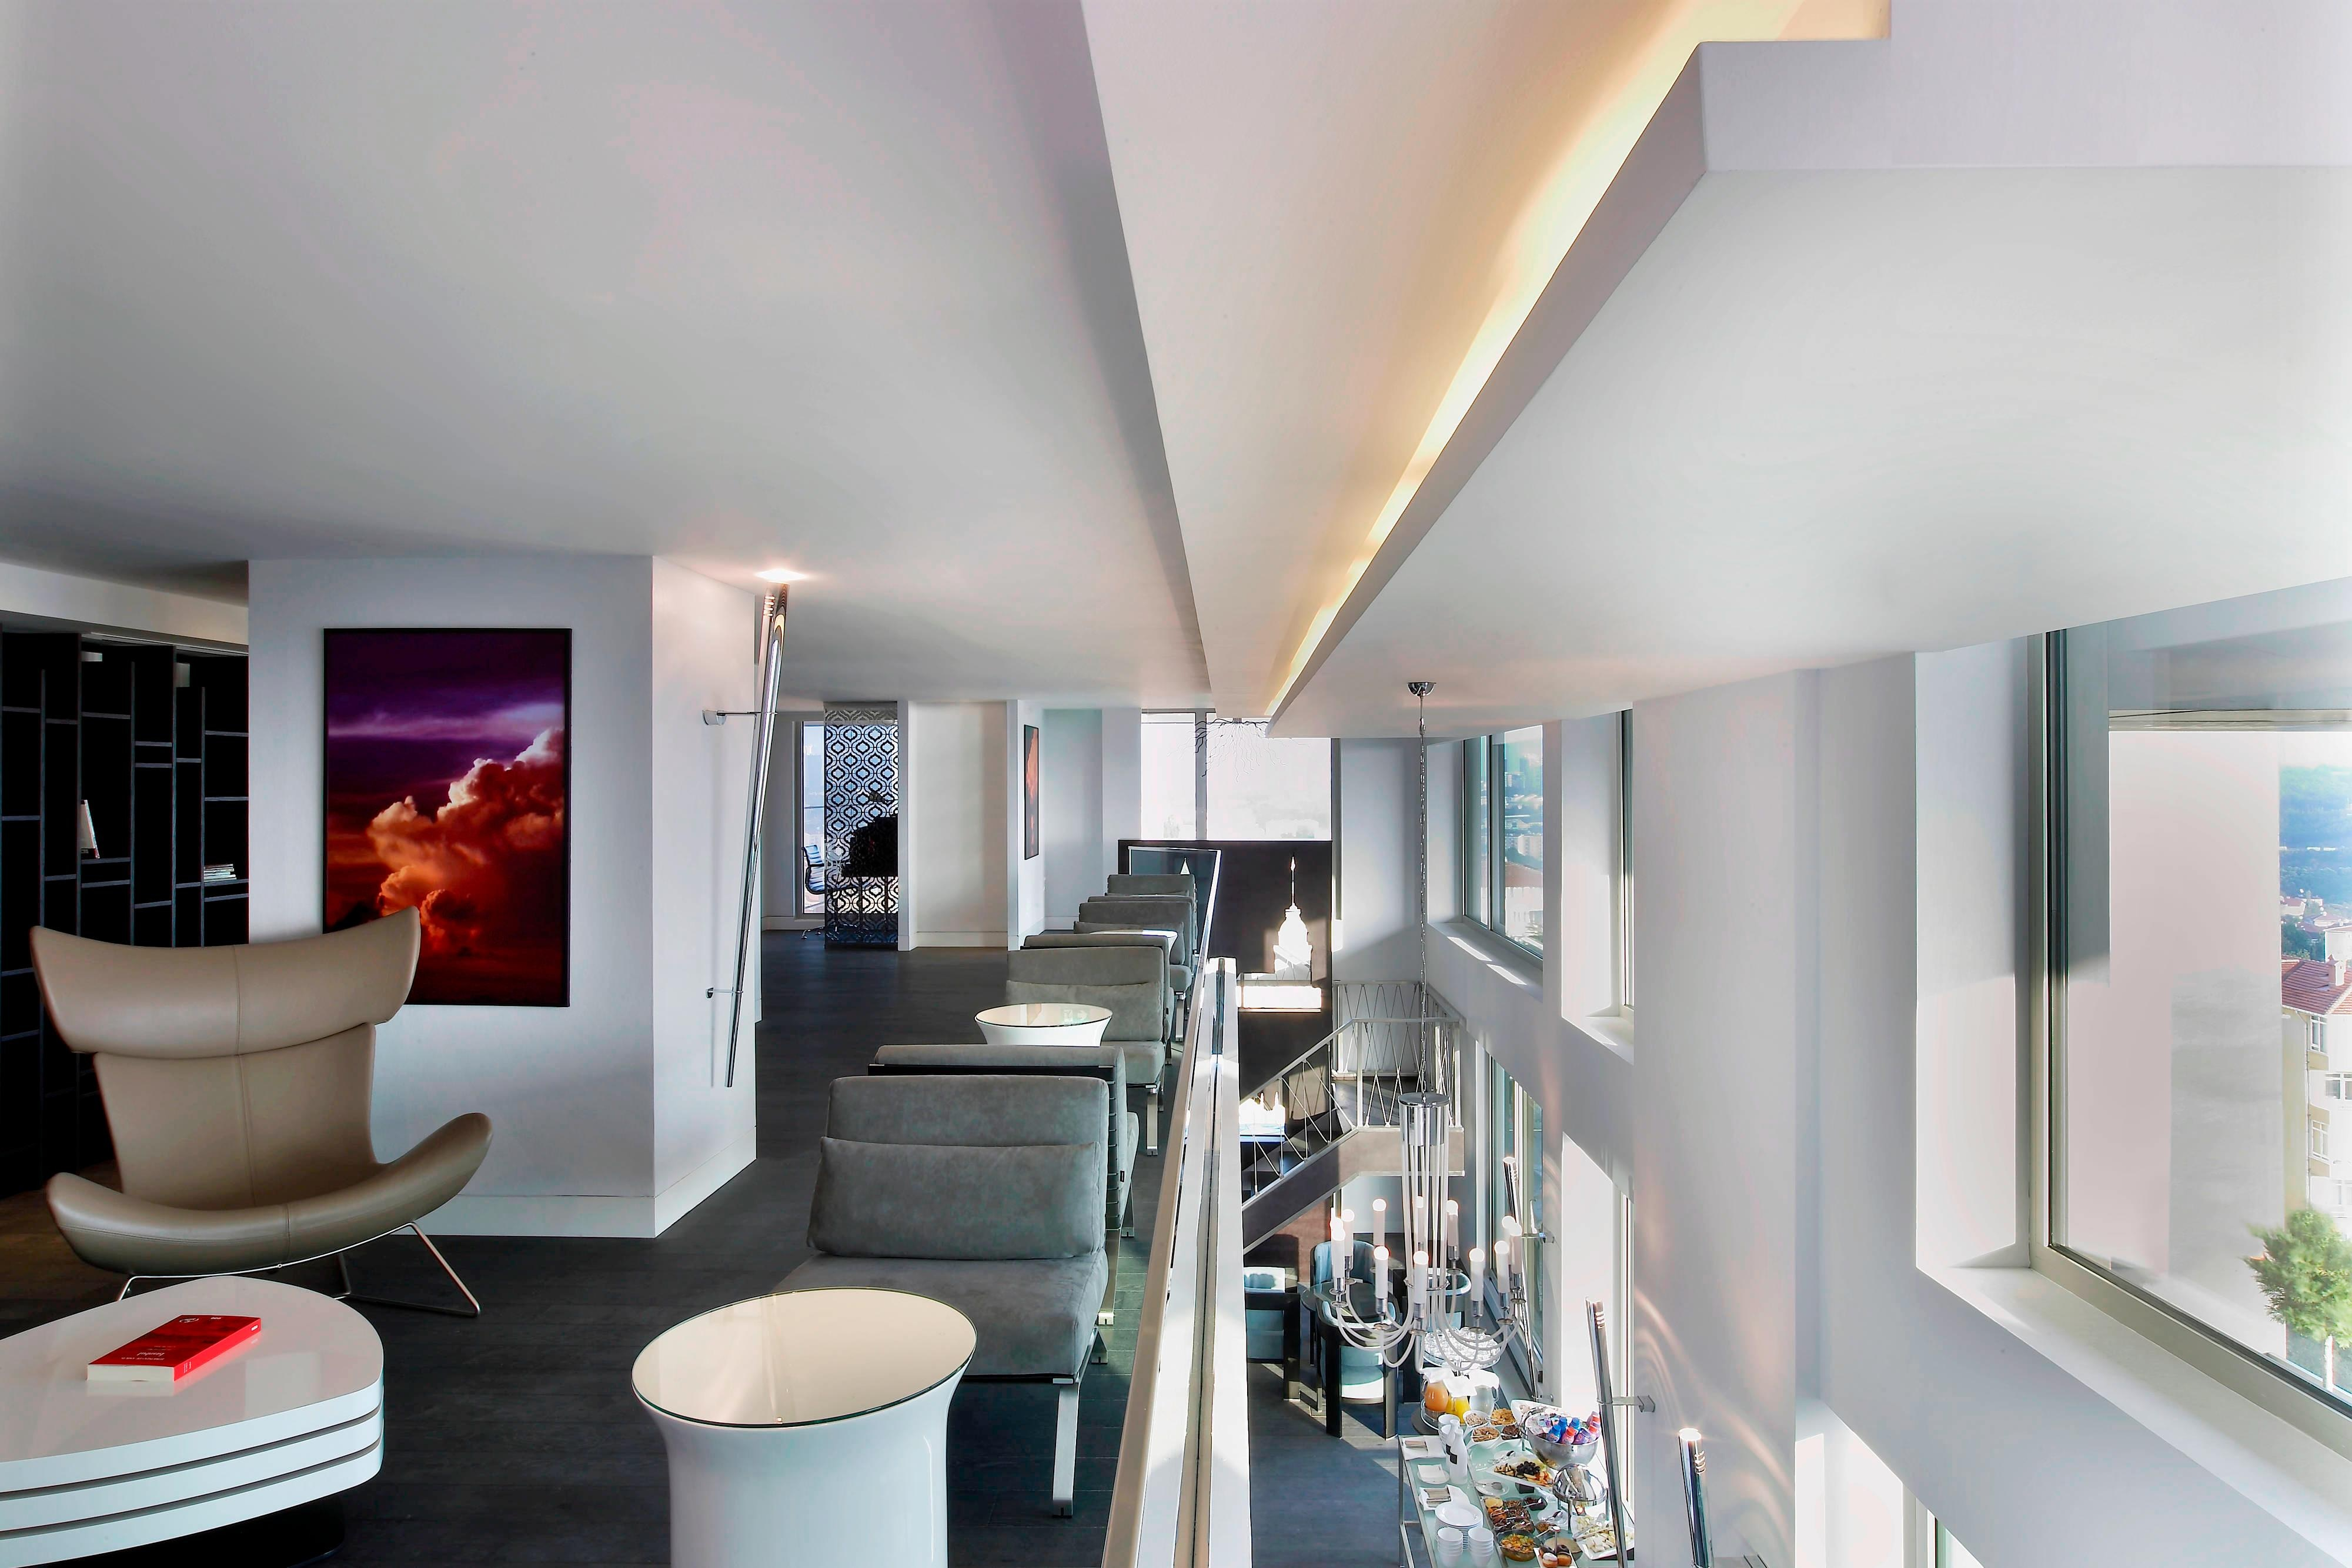 Club lounge mezzanine floor and seating area